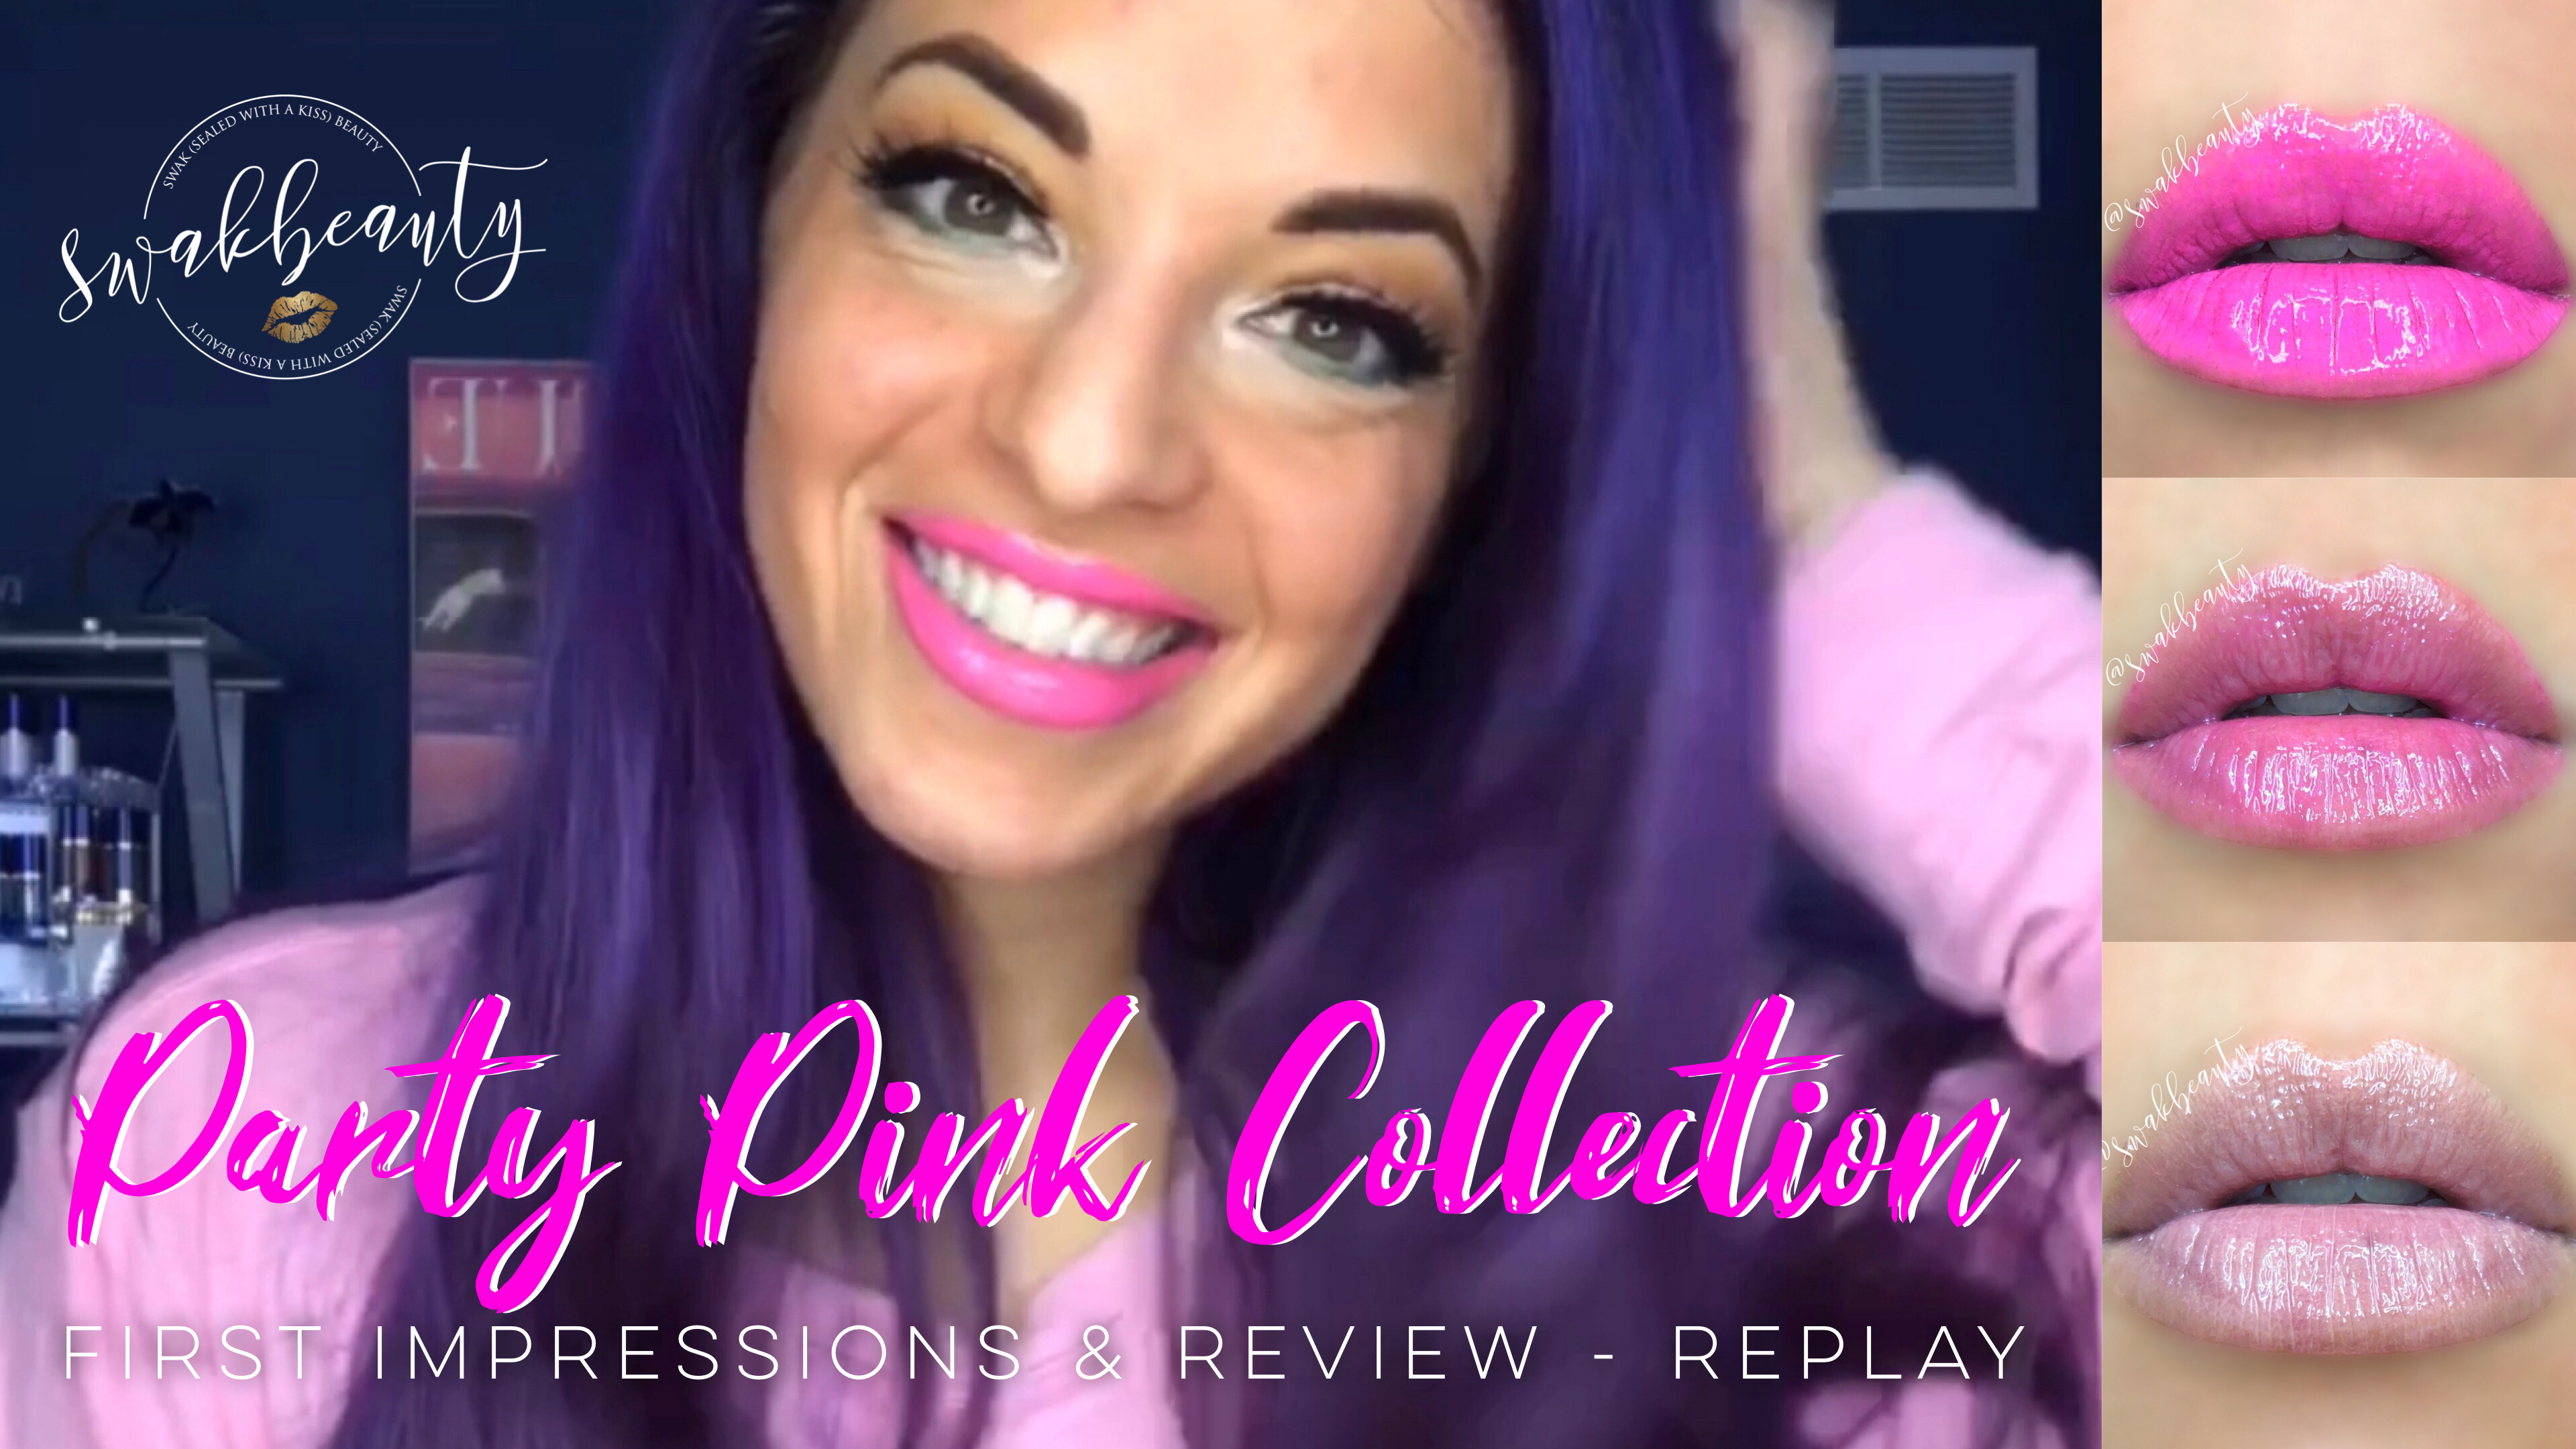 Party Pink Collection – First Impressions & Review!